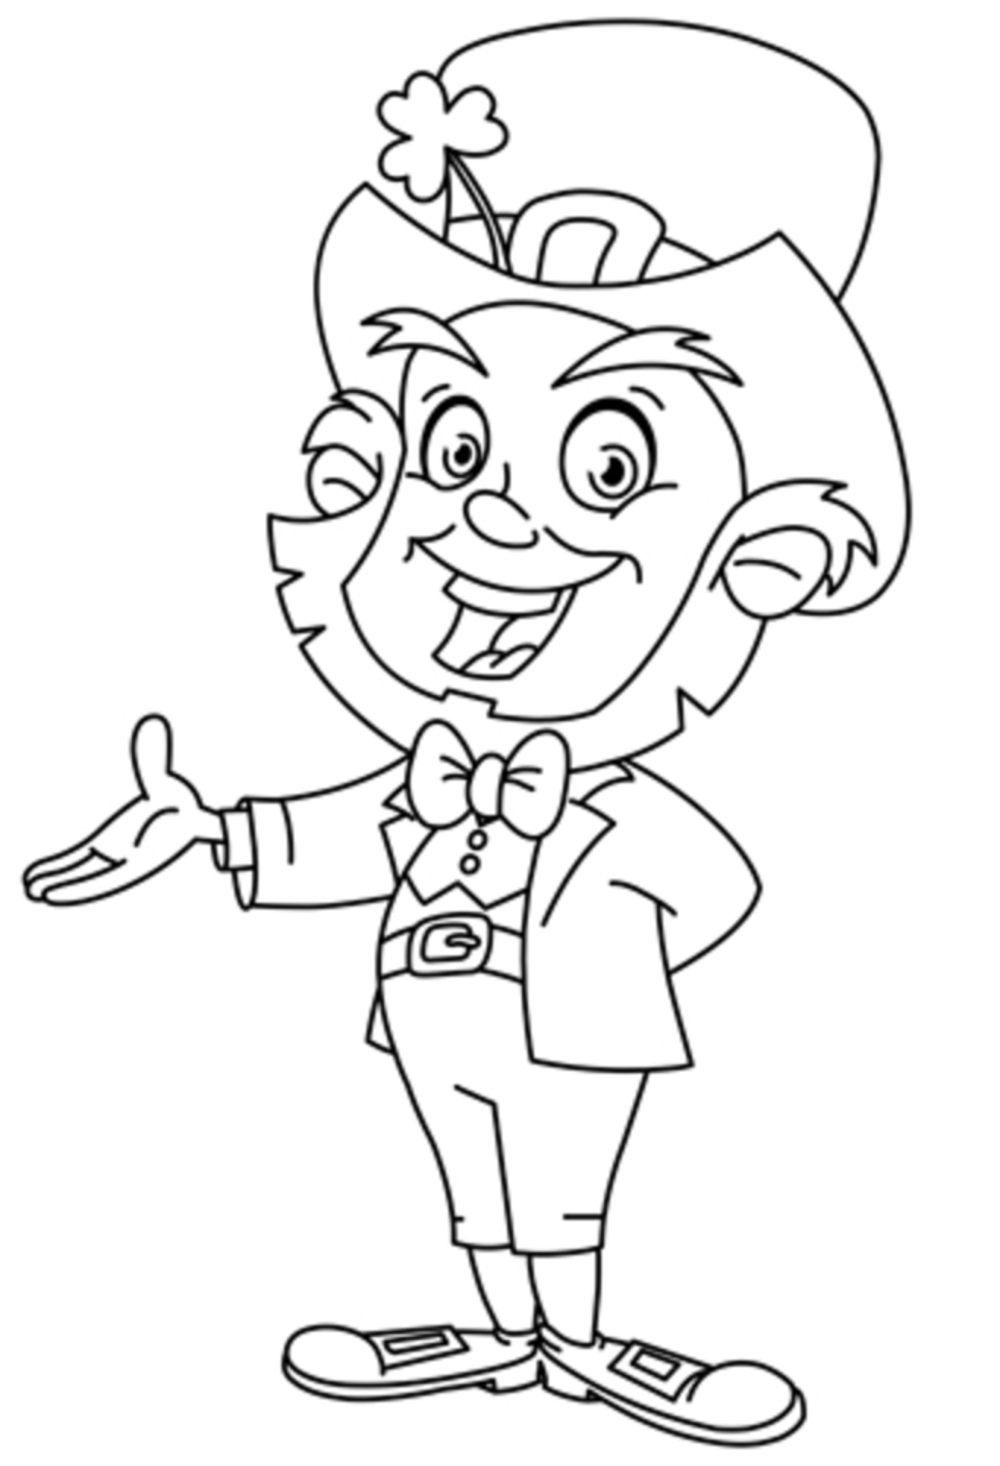 coloring pages bobo the magic clown todd smeltzer aka bobo